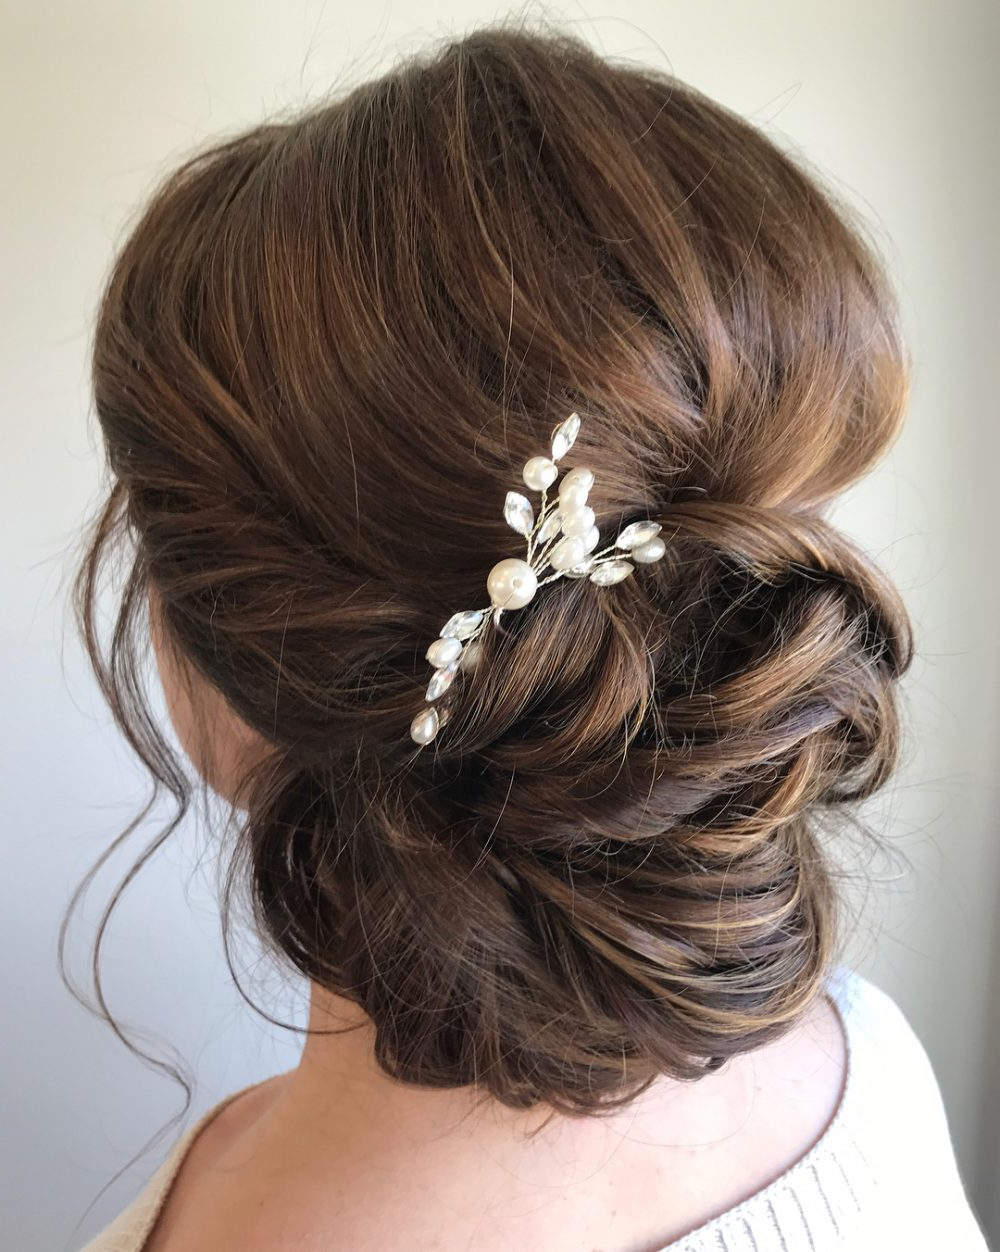 33 Breathtaking Loose Updos That Are Trendy For 2019 Pertaining To Latest Angular Updo Hairstyles With Waves And Texture (Gallery 9 of 20)